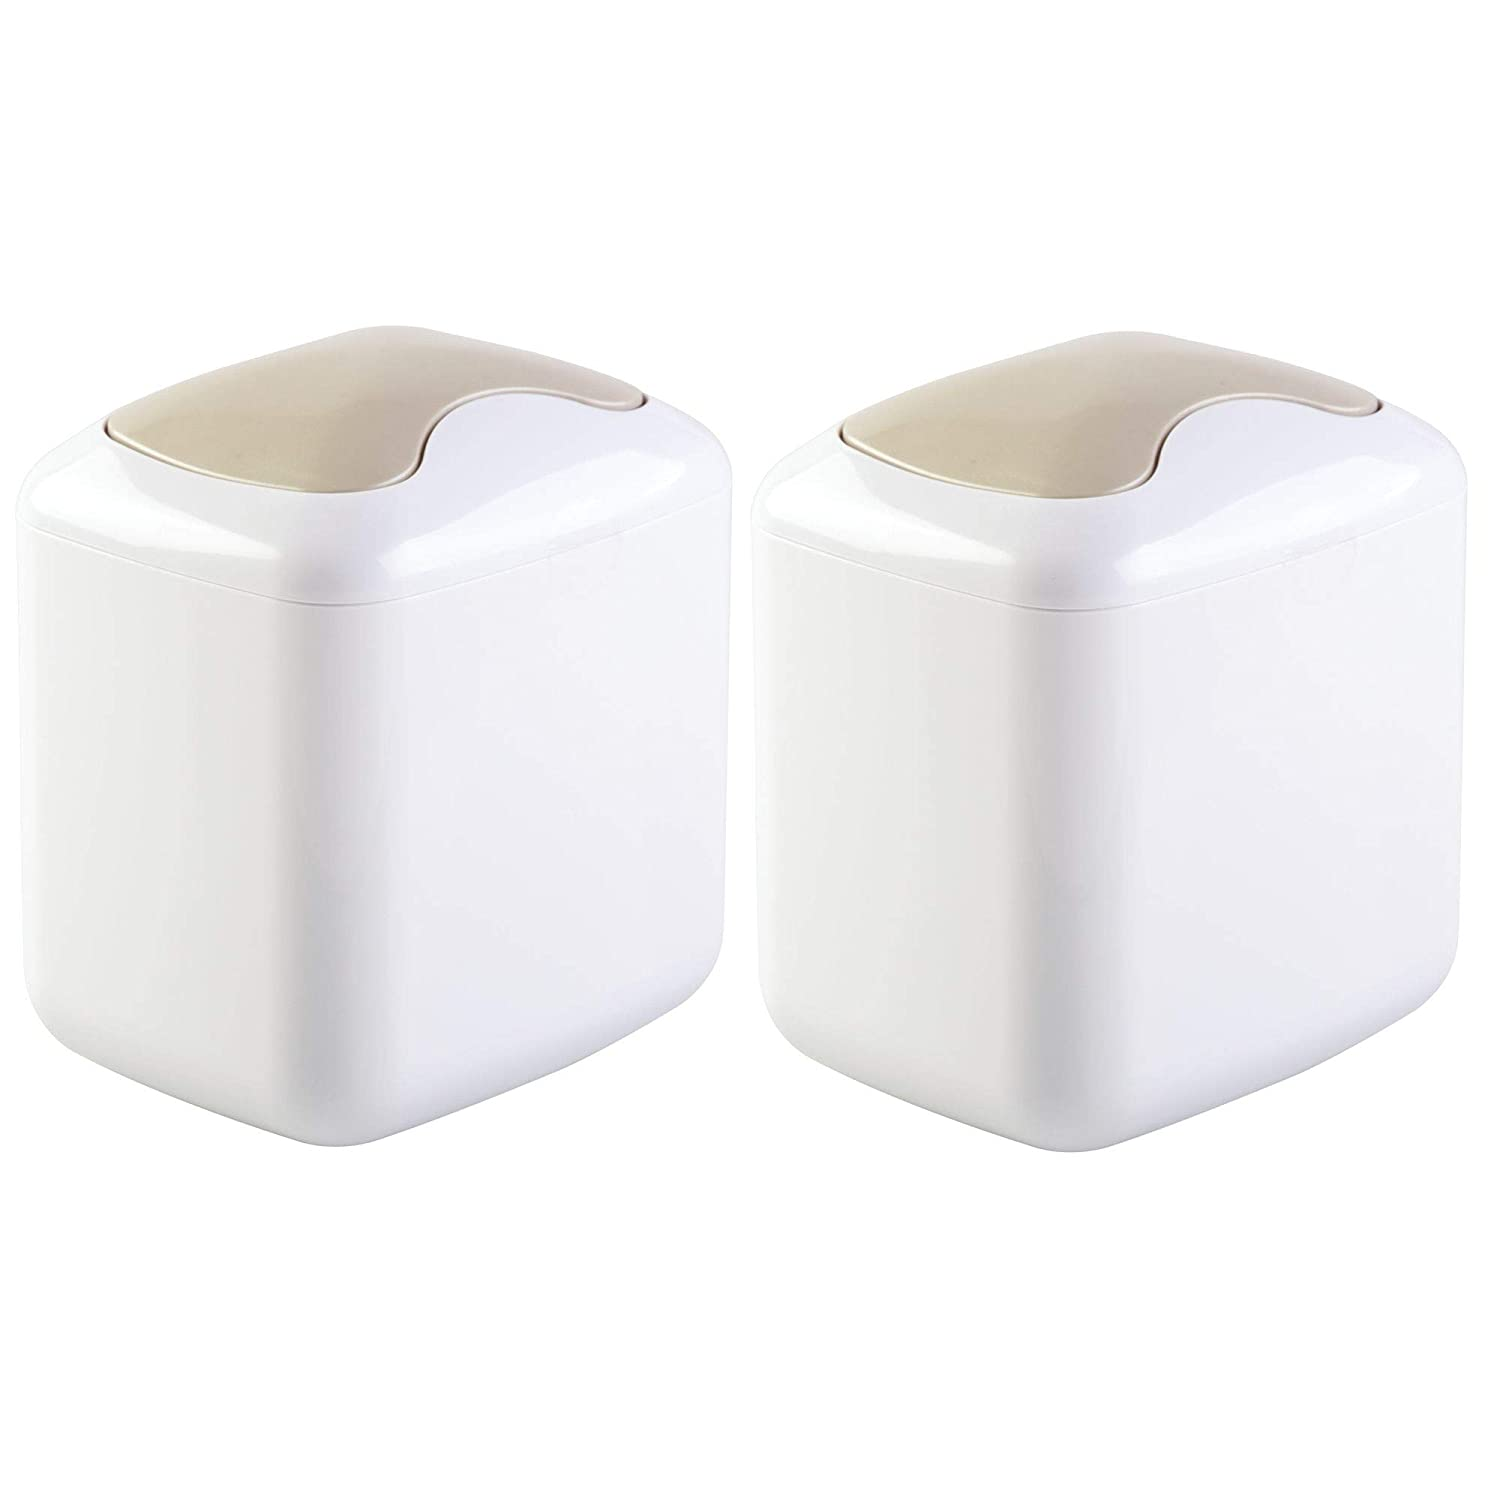 mDesign Modern Plastic Mini Wastebasket Trash Can Dispenser with Swing Lid for Bathroom Vanity Countertops or Tabletop to Dispose of Cotton Rounds, Makeup Sponges, Tissues, 2 Pack - White/Satin MetroDecor